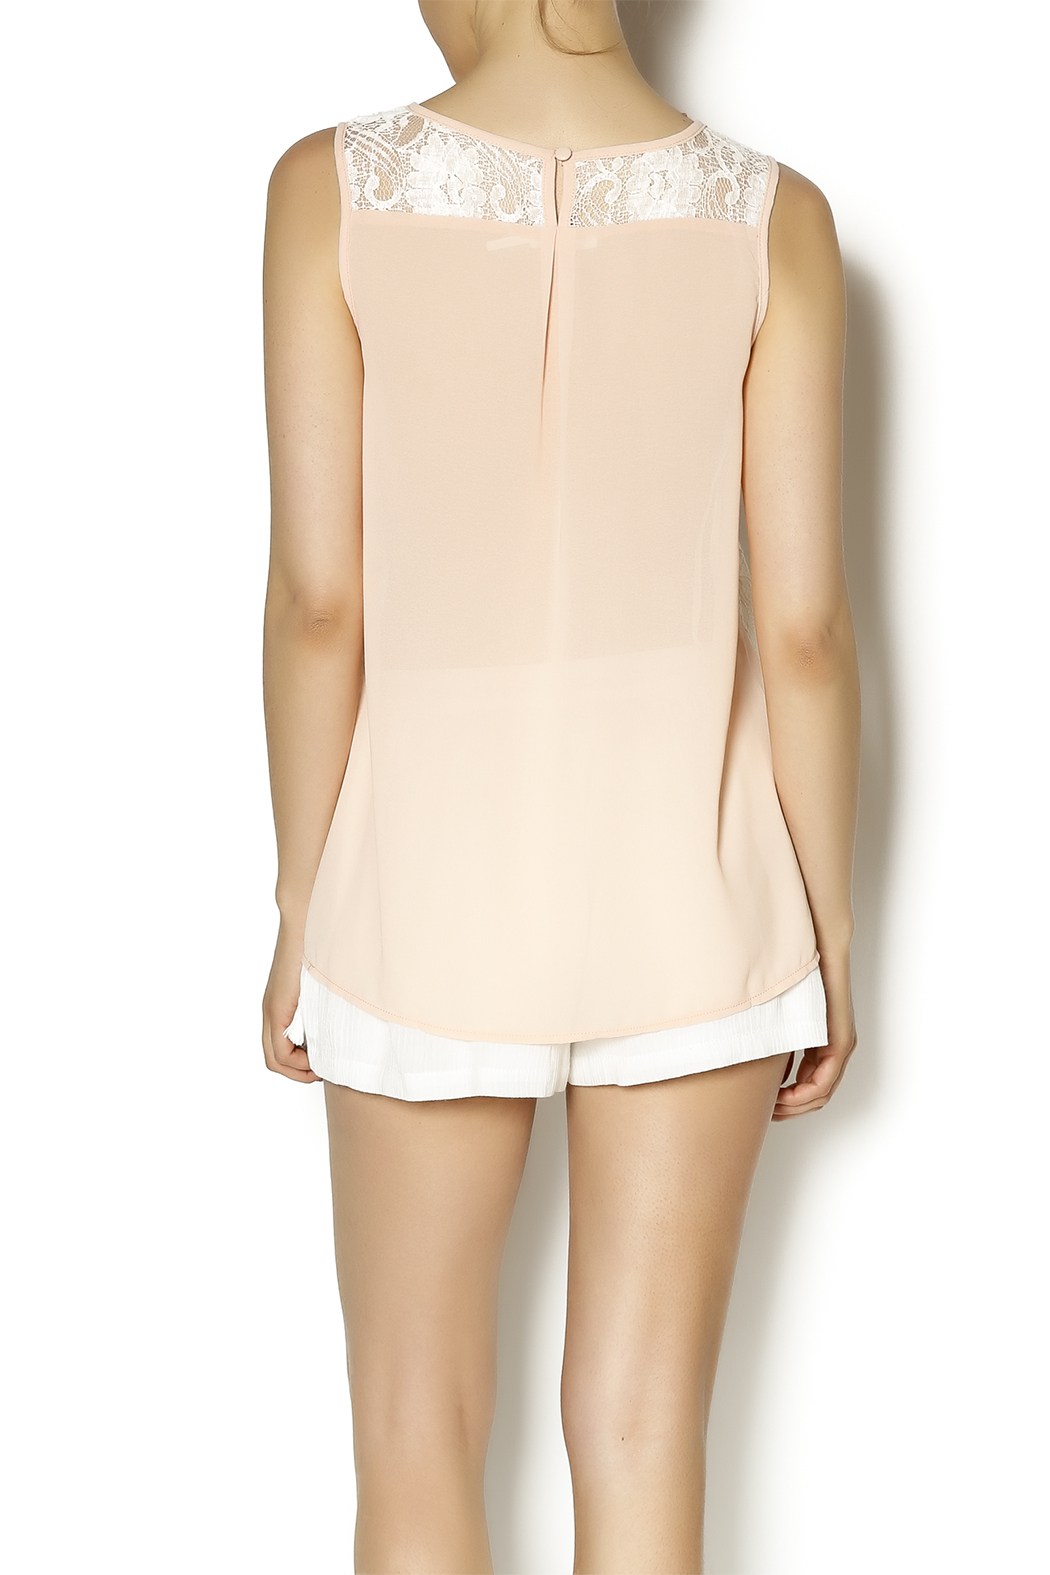 Blu Pepper Peach Embroidered Top - Back Cropped Image